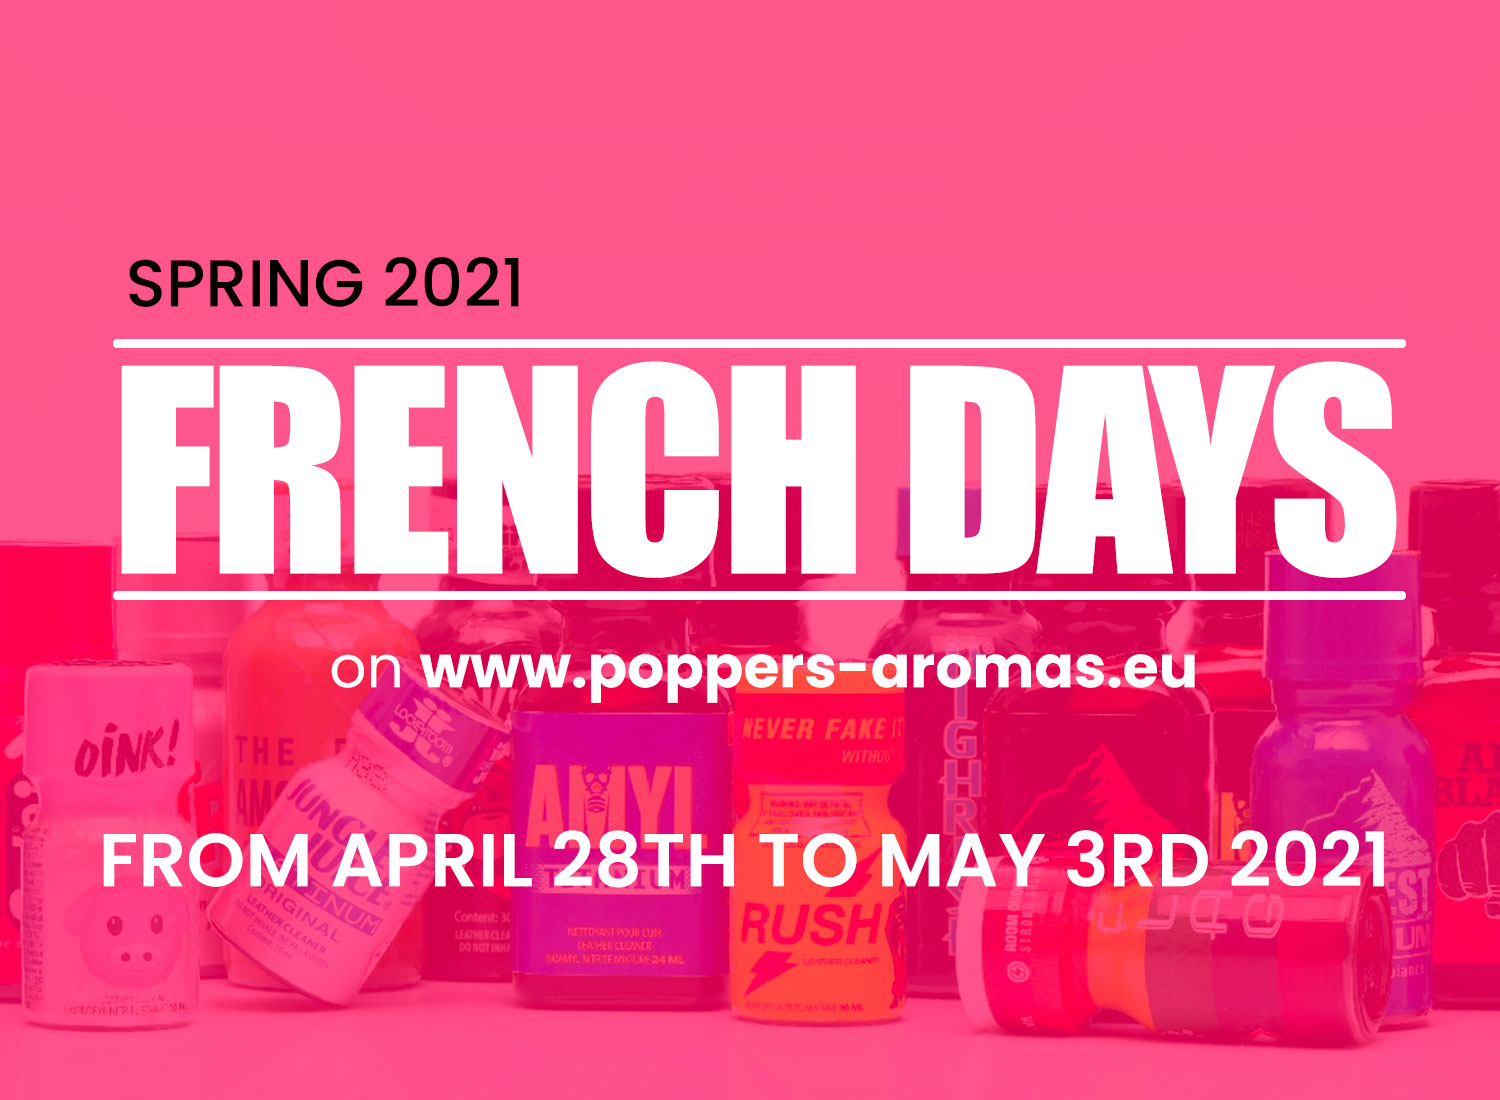 French Days Spring 2021: Promotions, Best Poppers & Pleasure!